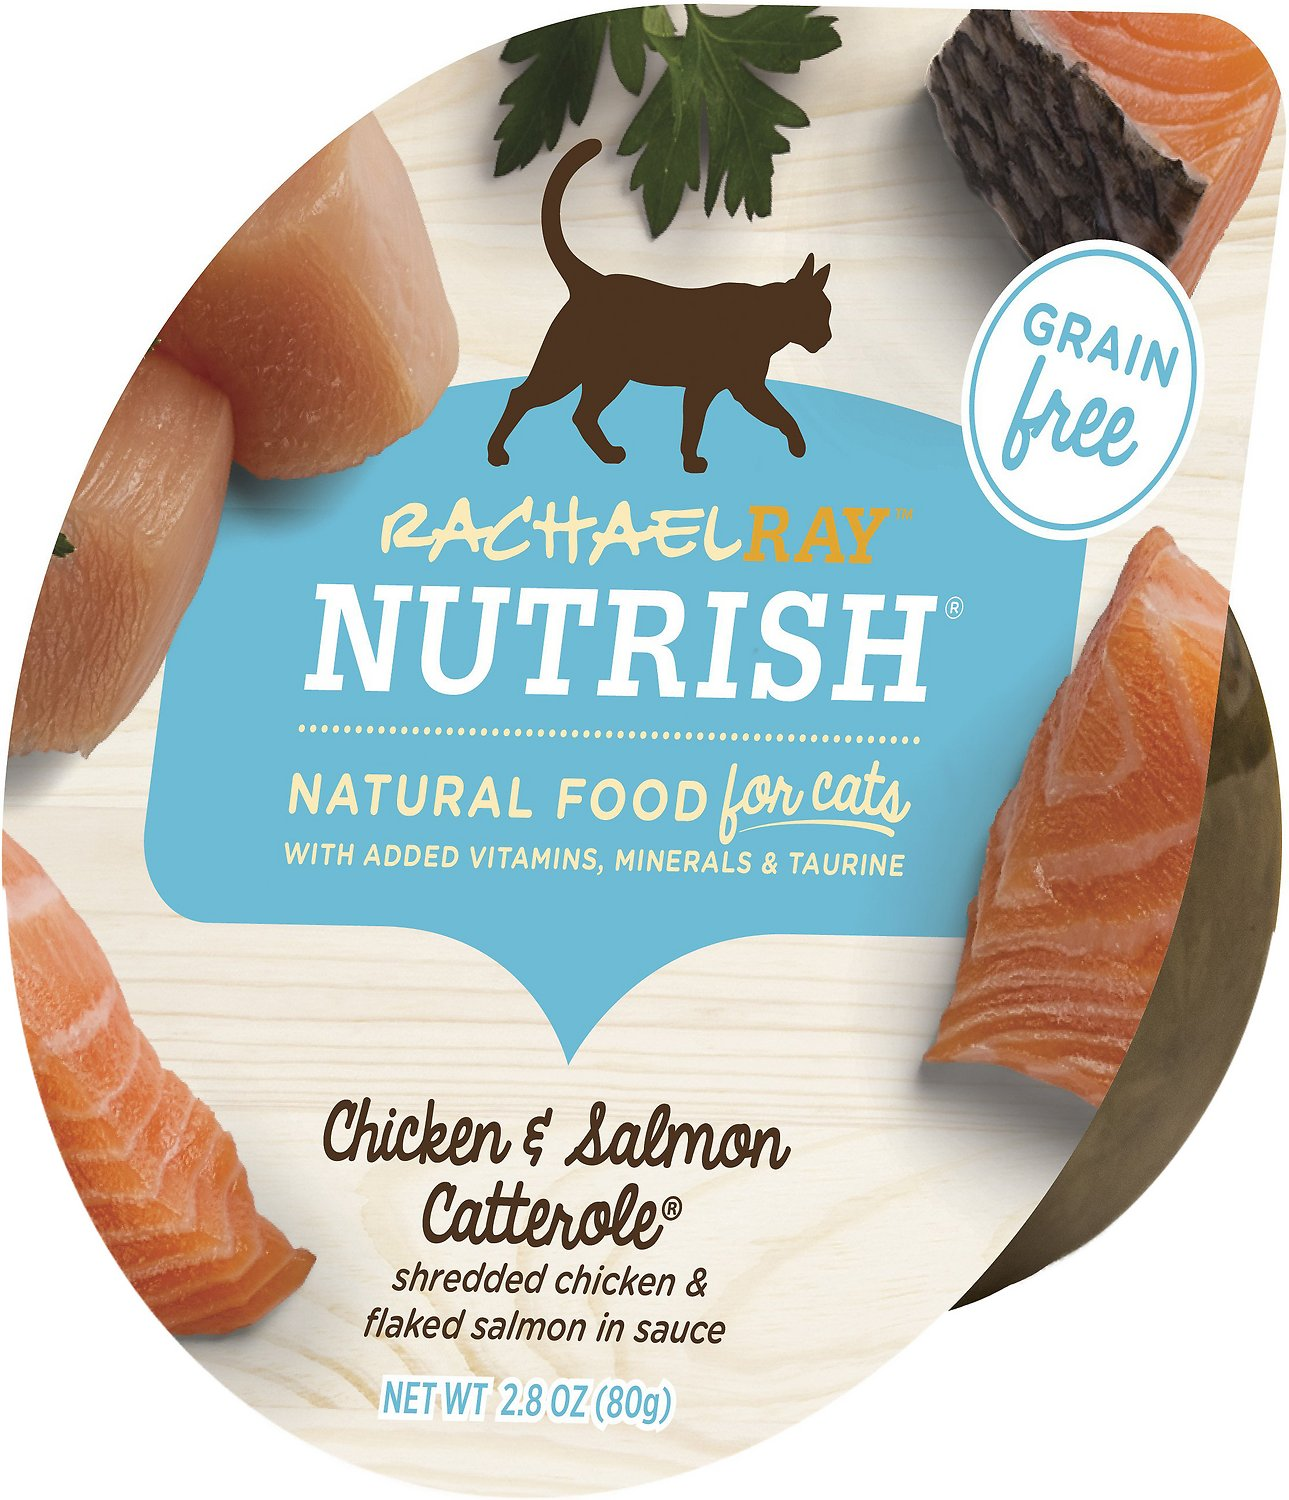 Rachael Ray Nutrish Chicken Salmon Catterole Natural Grain Free Wet Cat Food 2 8 Oz Case Of 24